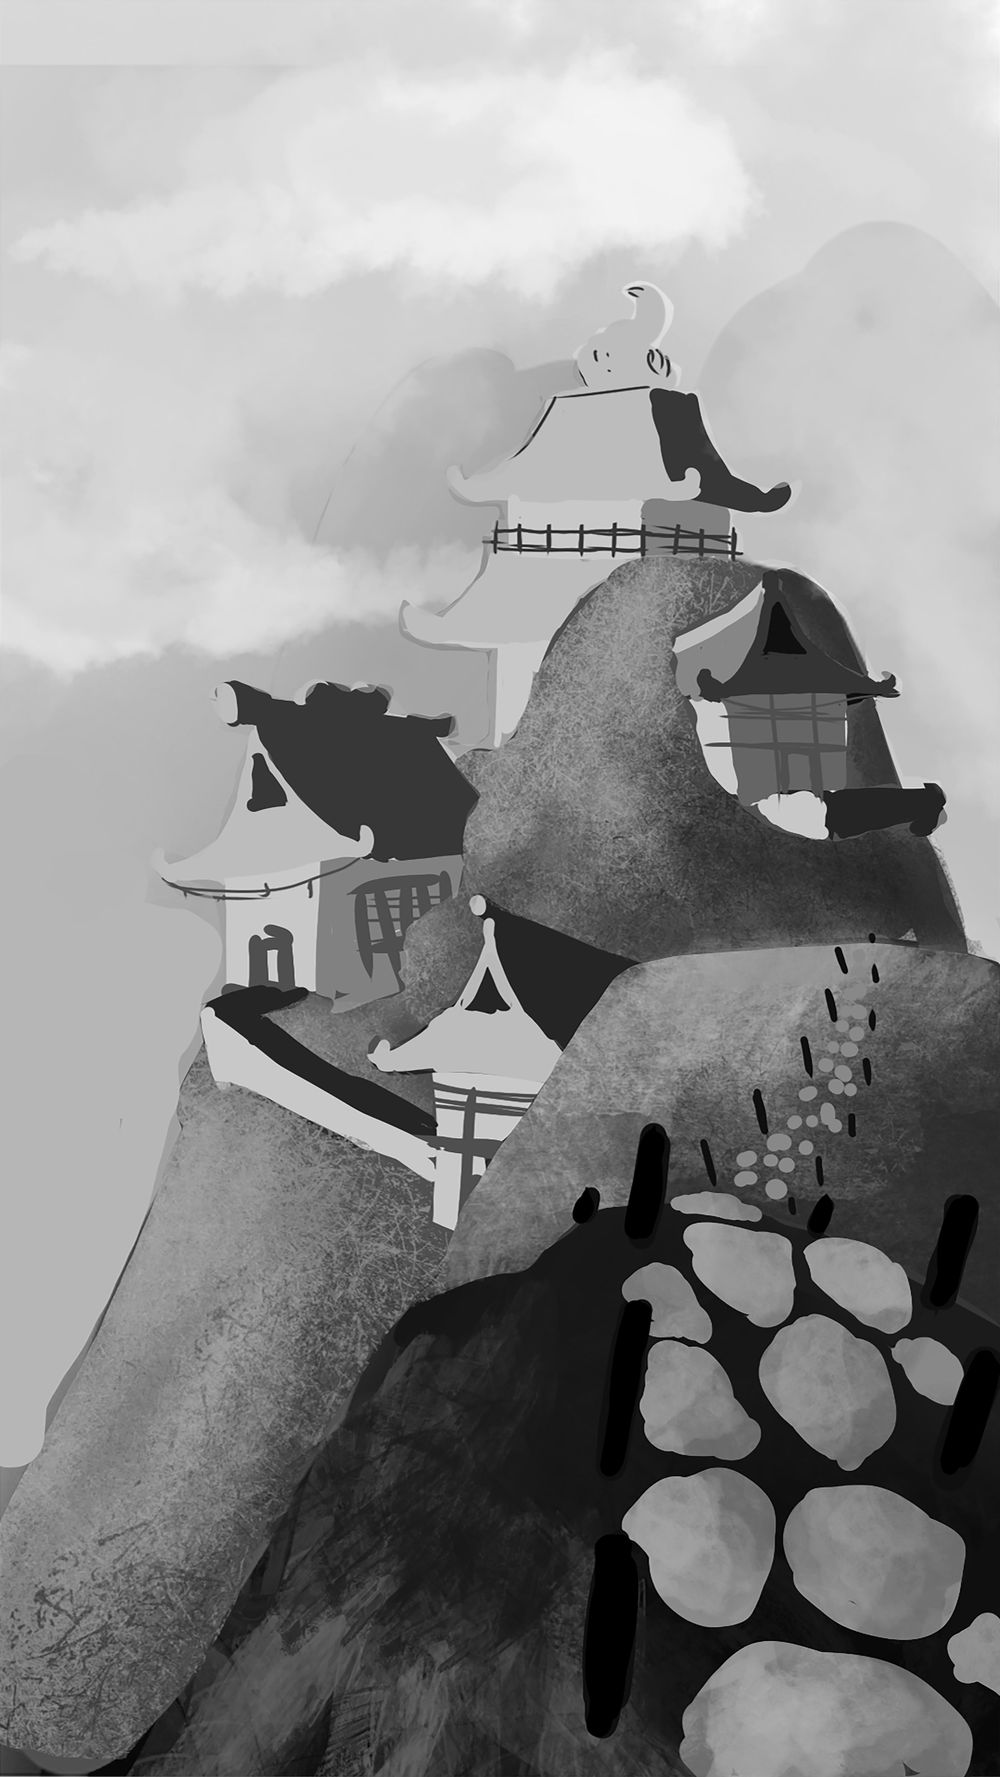 My very first concept art! - image 2 - student project